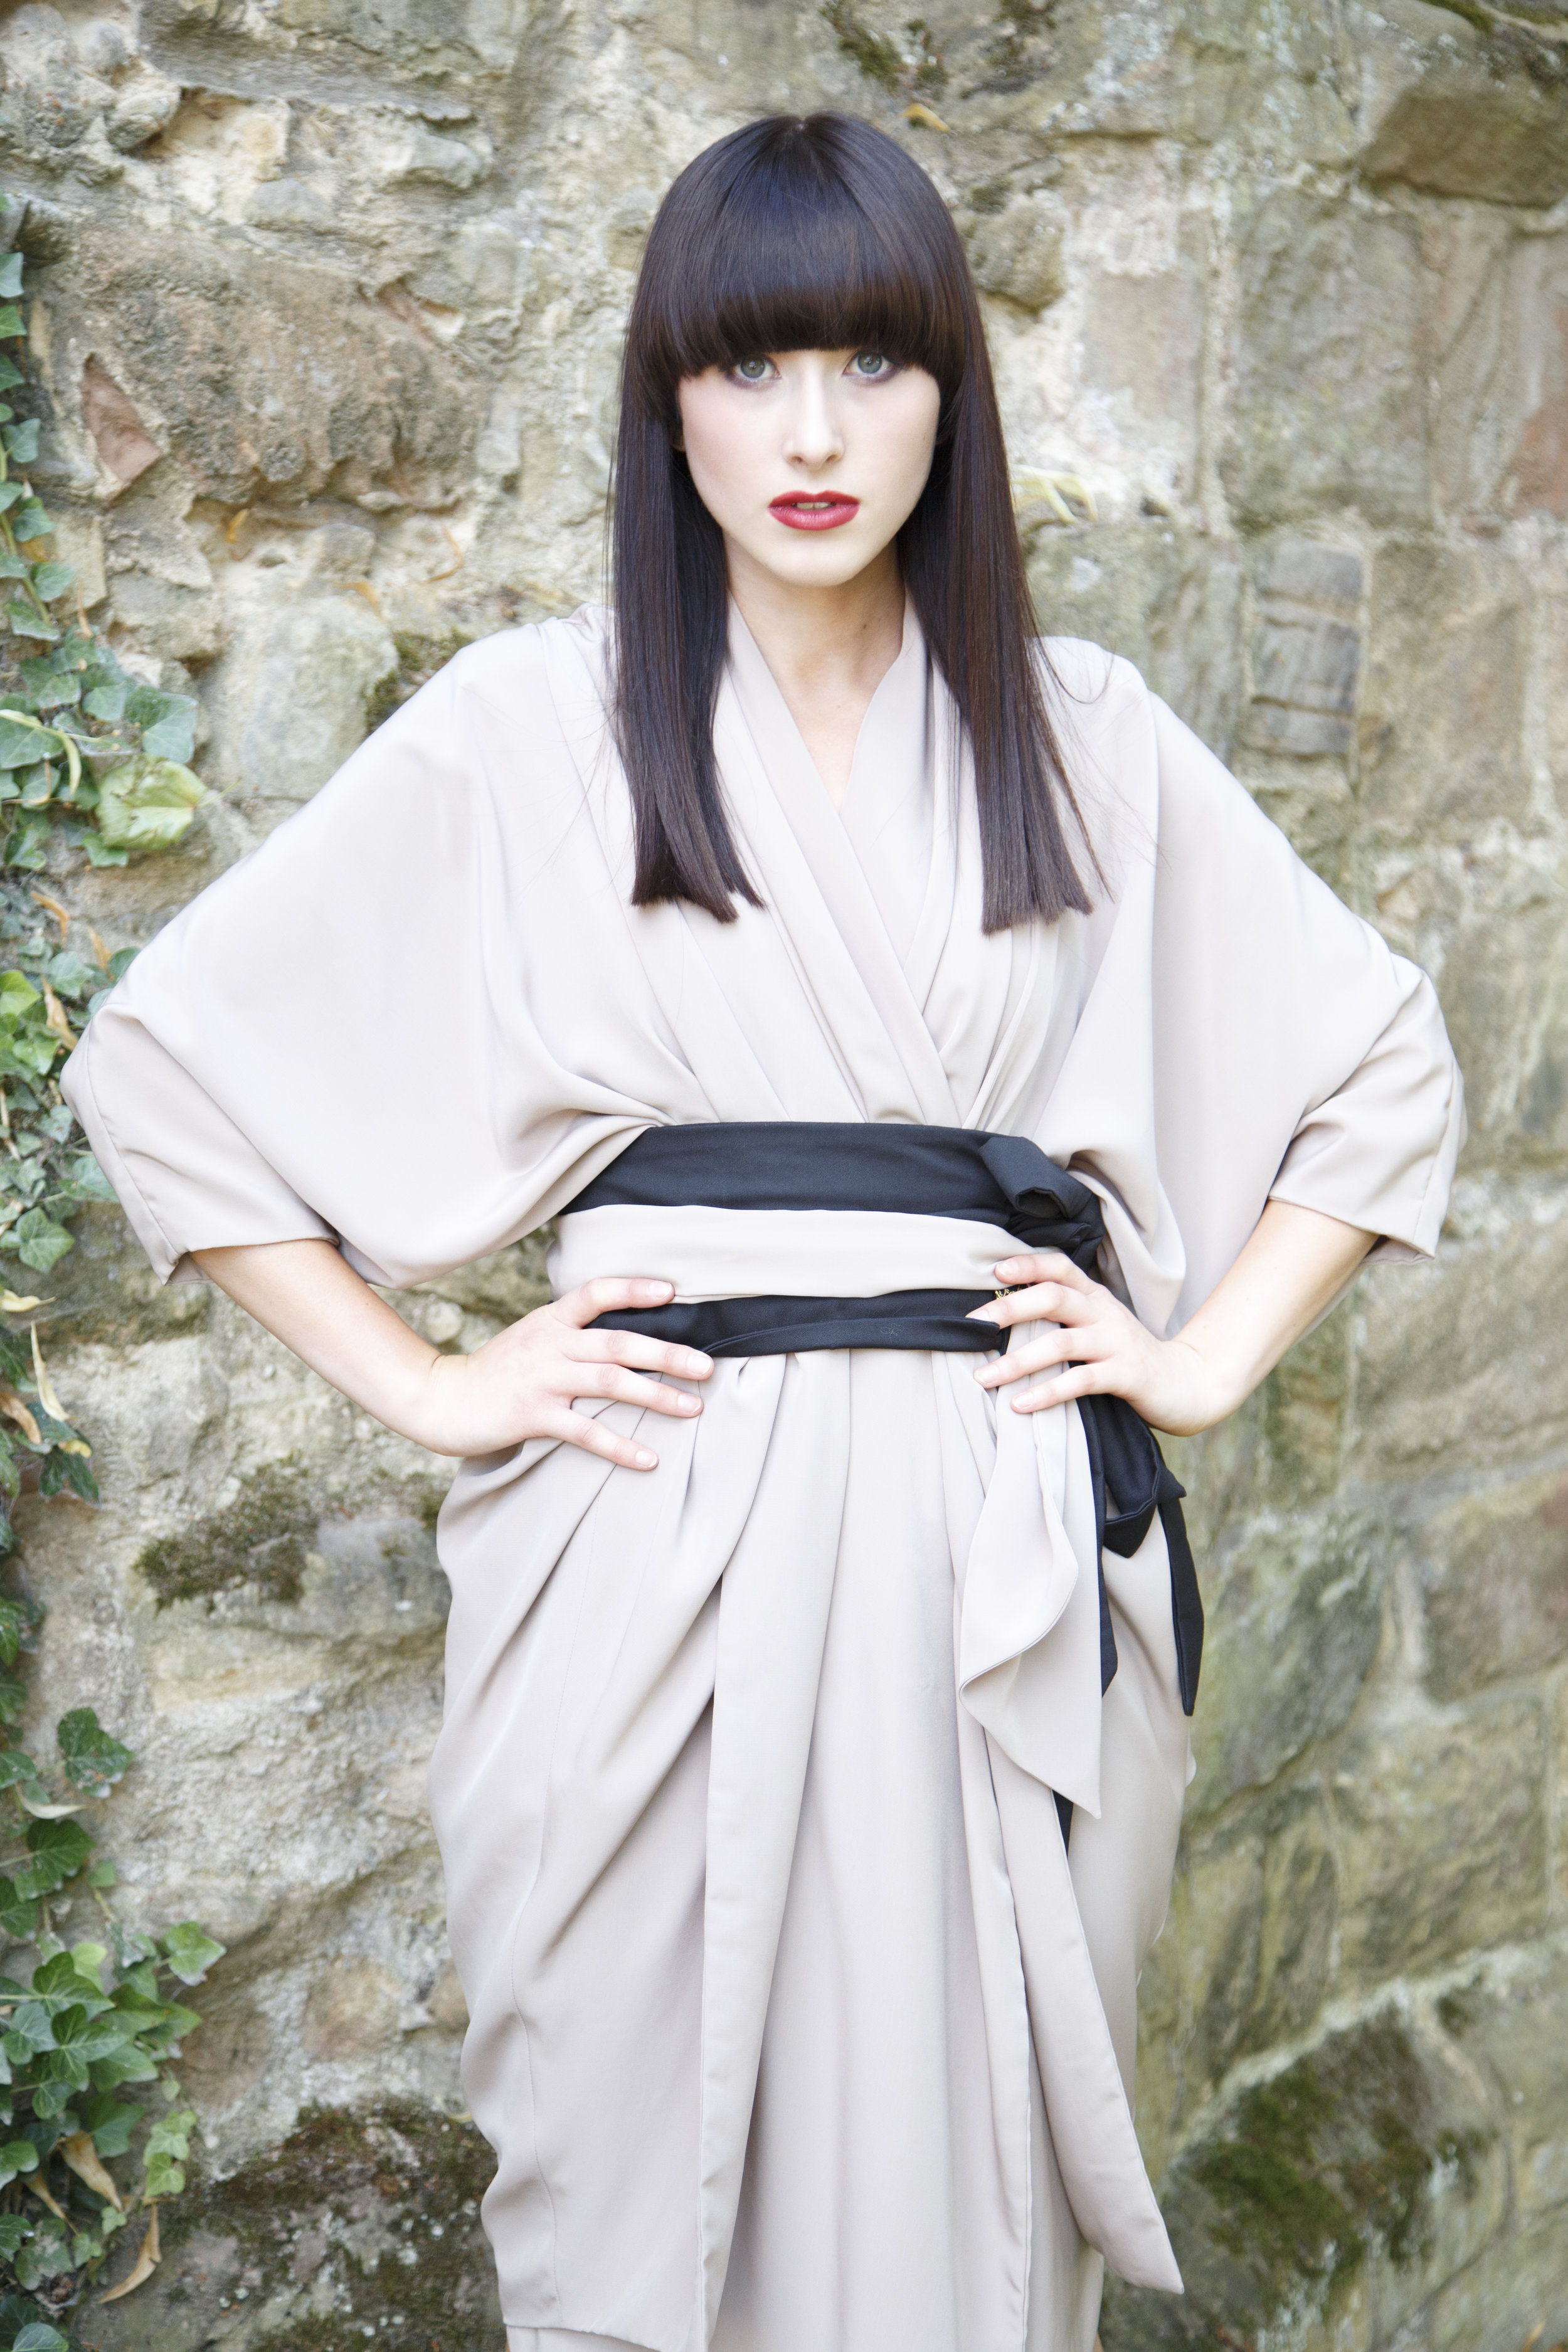 zaramia-ava-zaramiaava-leeds-fashion-designer-ethical-sustainable-nude-versatile-drape-ayame-jacket-emi-dress-obi-belt-black-ami-scarf-japanese-womenswear-2